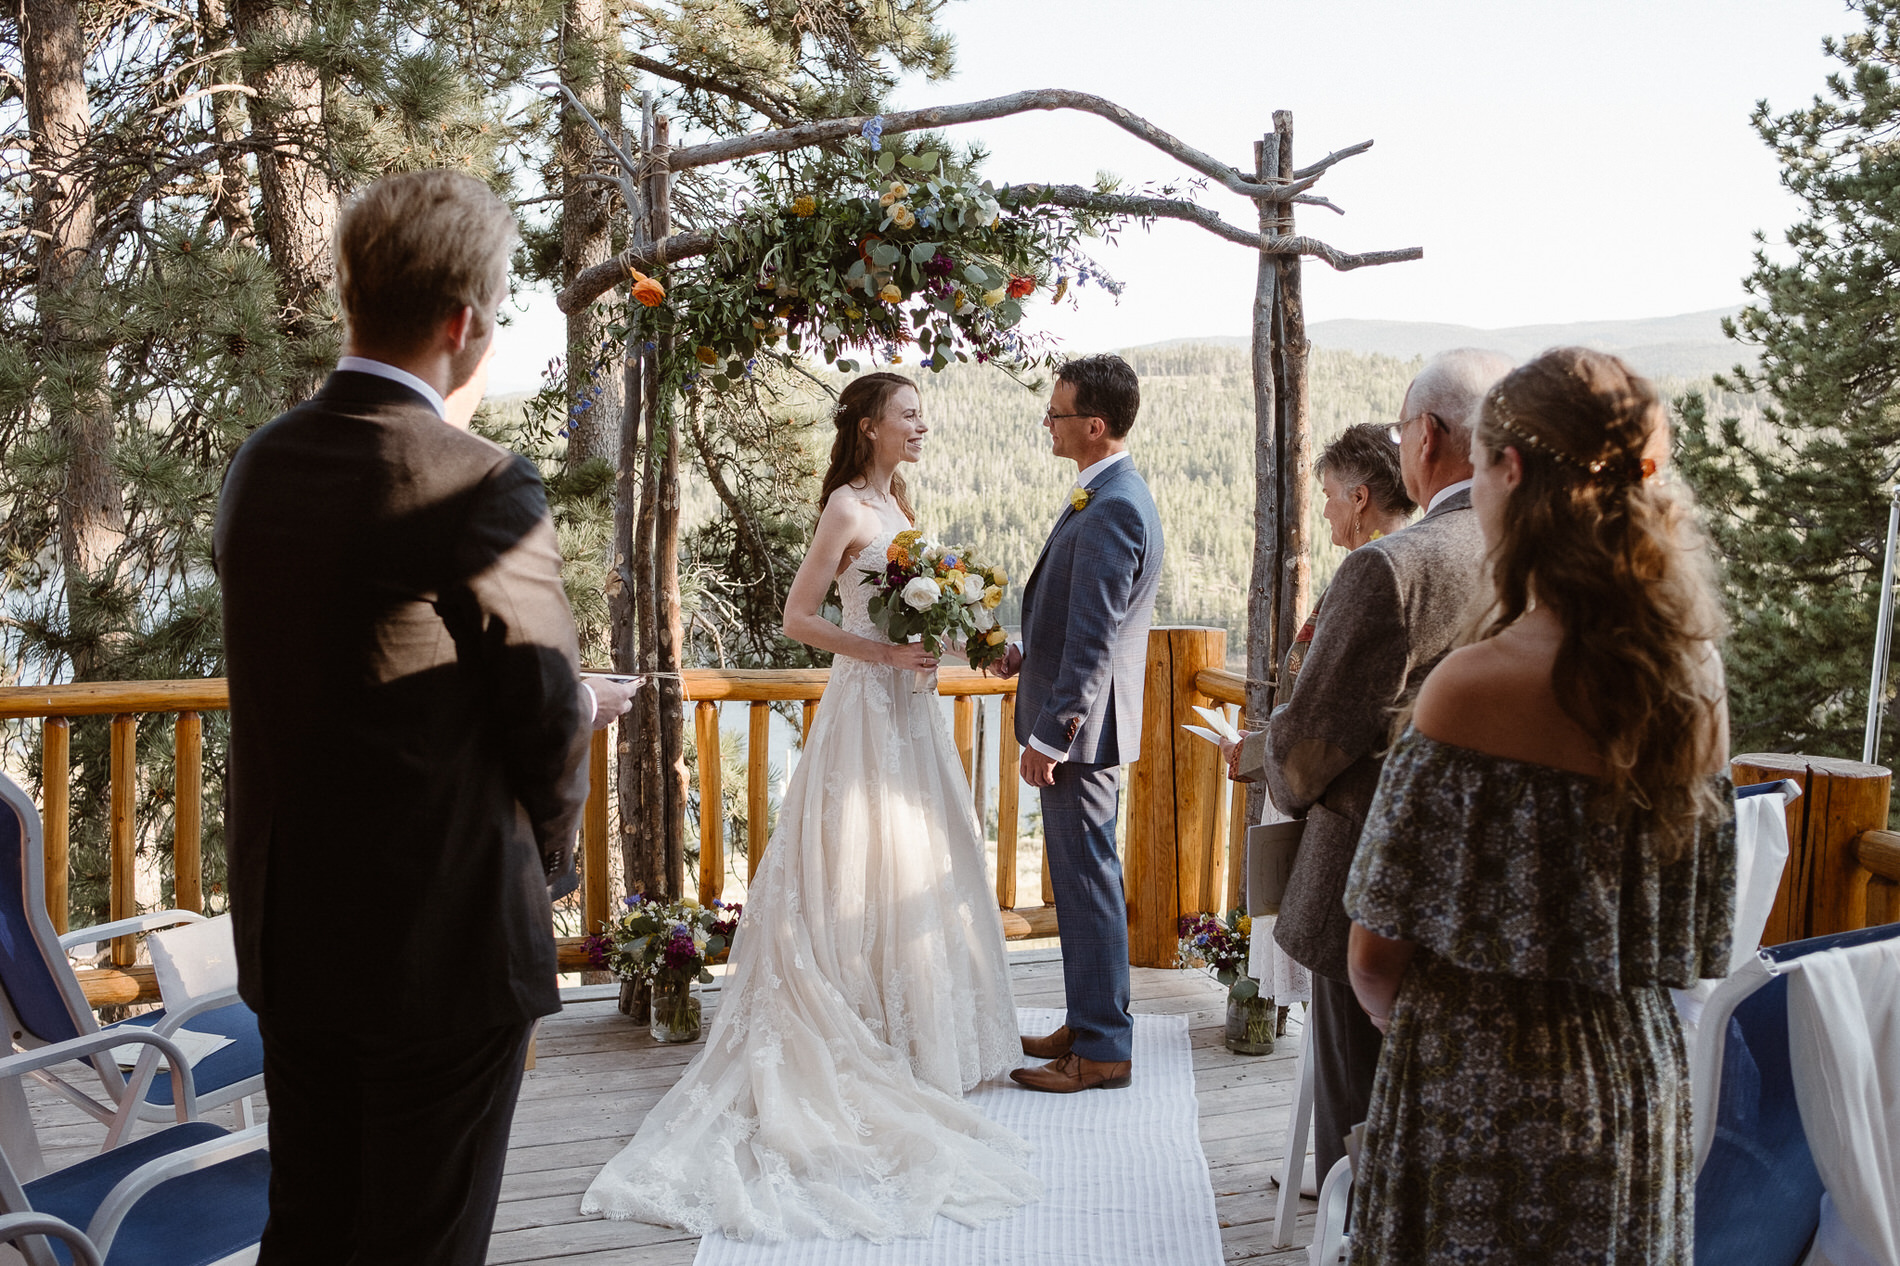 Elopement ceremony at the groom's family cabin with only the closest family in attendance at Red Feather Lakes, CO